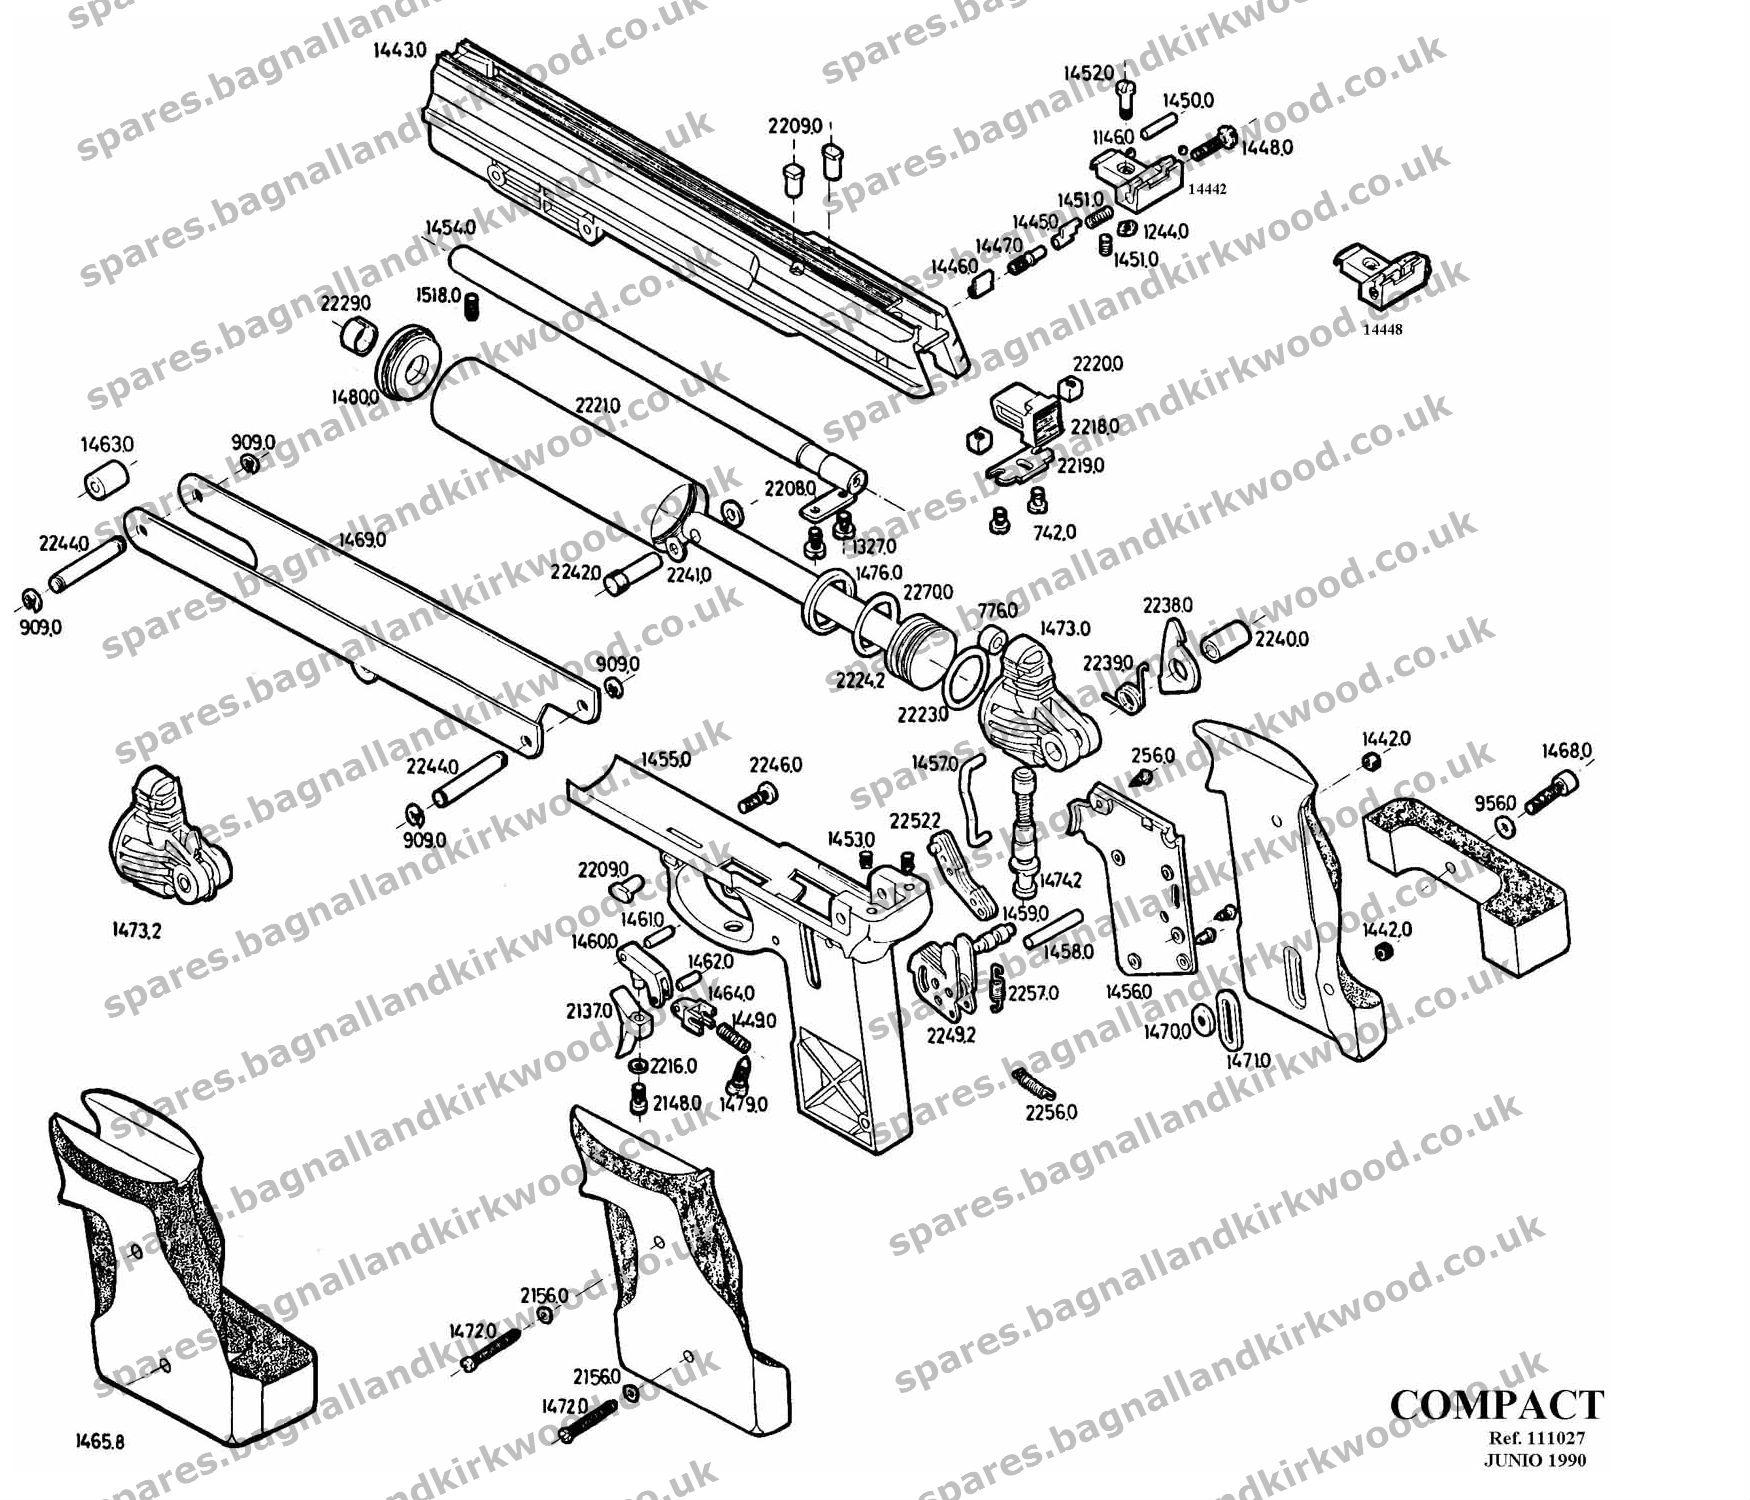 Gamo compact bagnall and kirkwood airgun spares gamo compact air pistol exploded diagram parts list pooptronica